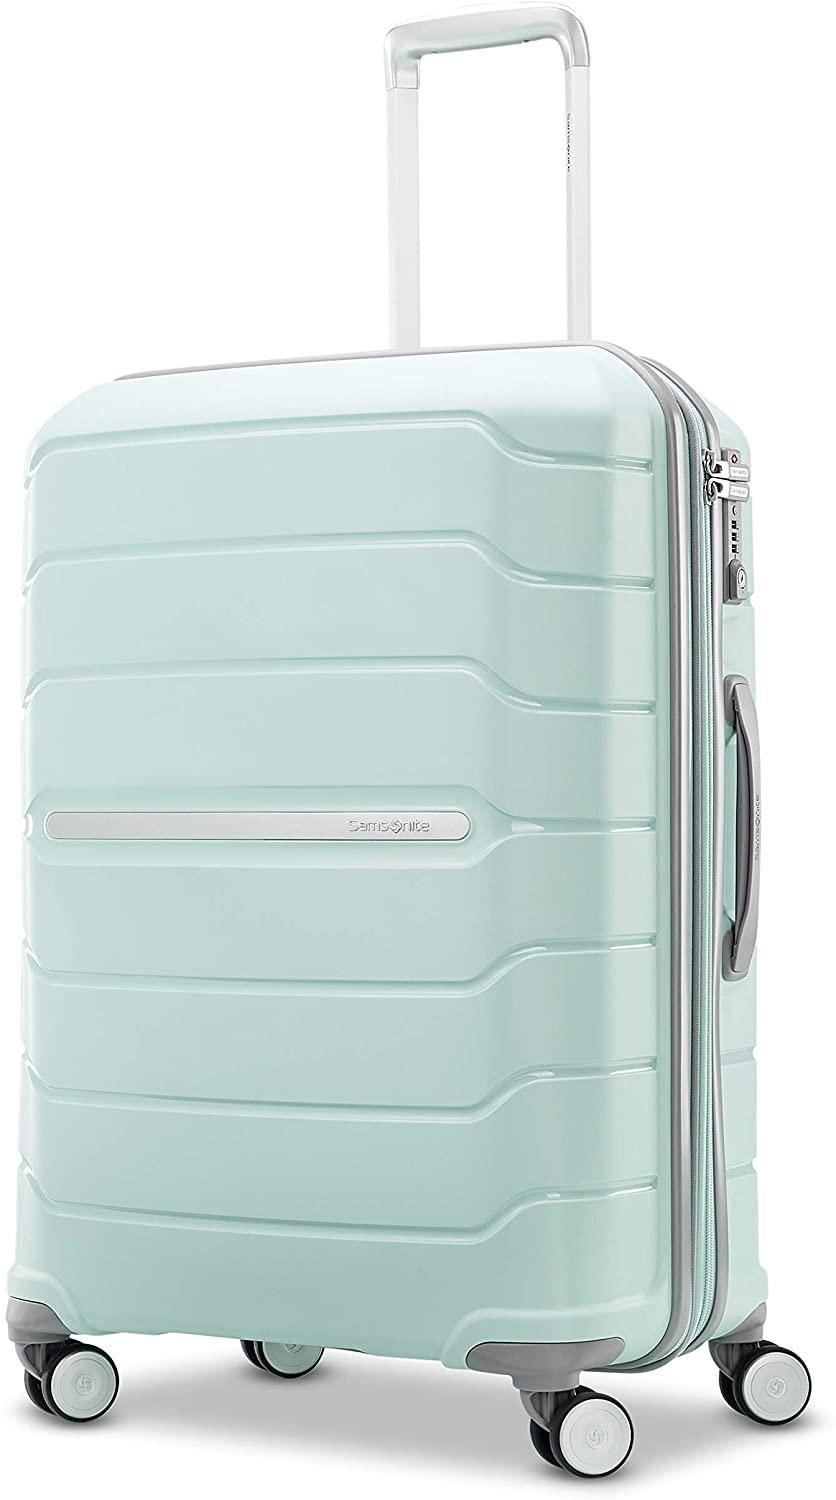 "<h2>41% Off Samsonite Freeform Hardside Expandable Double-Spinner Wheels Carry-On</h2><br>The perfect steal on a gift for your favorite wanderluster. Samsonite's cult-favorite suitcases are durable, lightweight, stylish, and all come with a 10-year warranty that protects against defects/ <br><br><strong>Samsonite</strong> Freeform Hardside Expandable with Double Spinner Wheels, $, available at <a href=""https://amzn.to/37BDSoH"" rel=""nofollow noopener"" target=""_blank"" data-ylk=""slk:Amazon"" class=""link rapid-noclick-resp"">Amazon</a>"